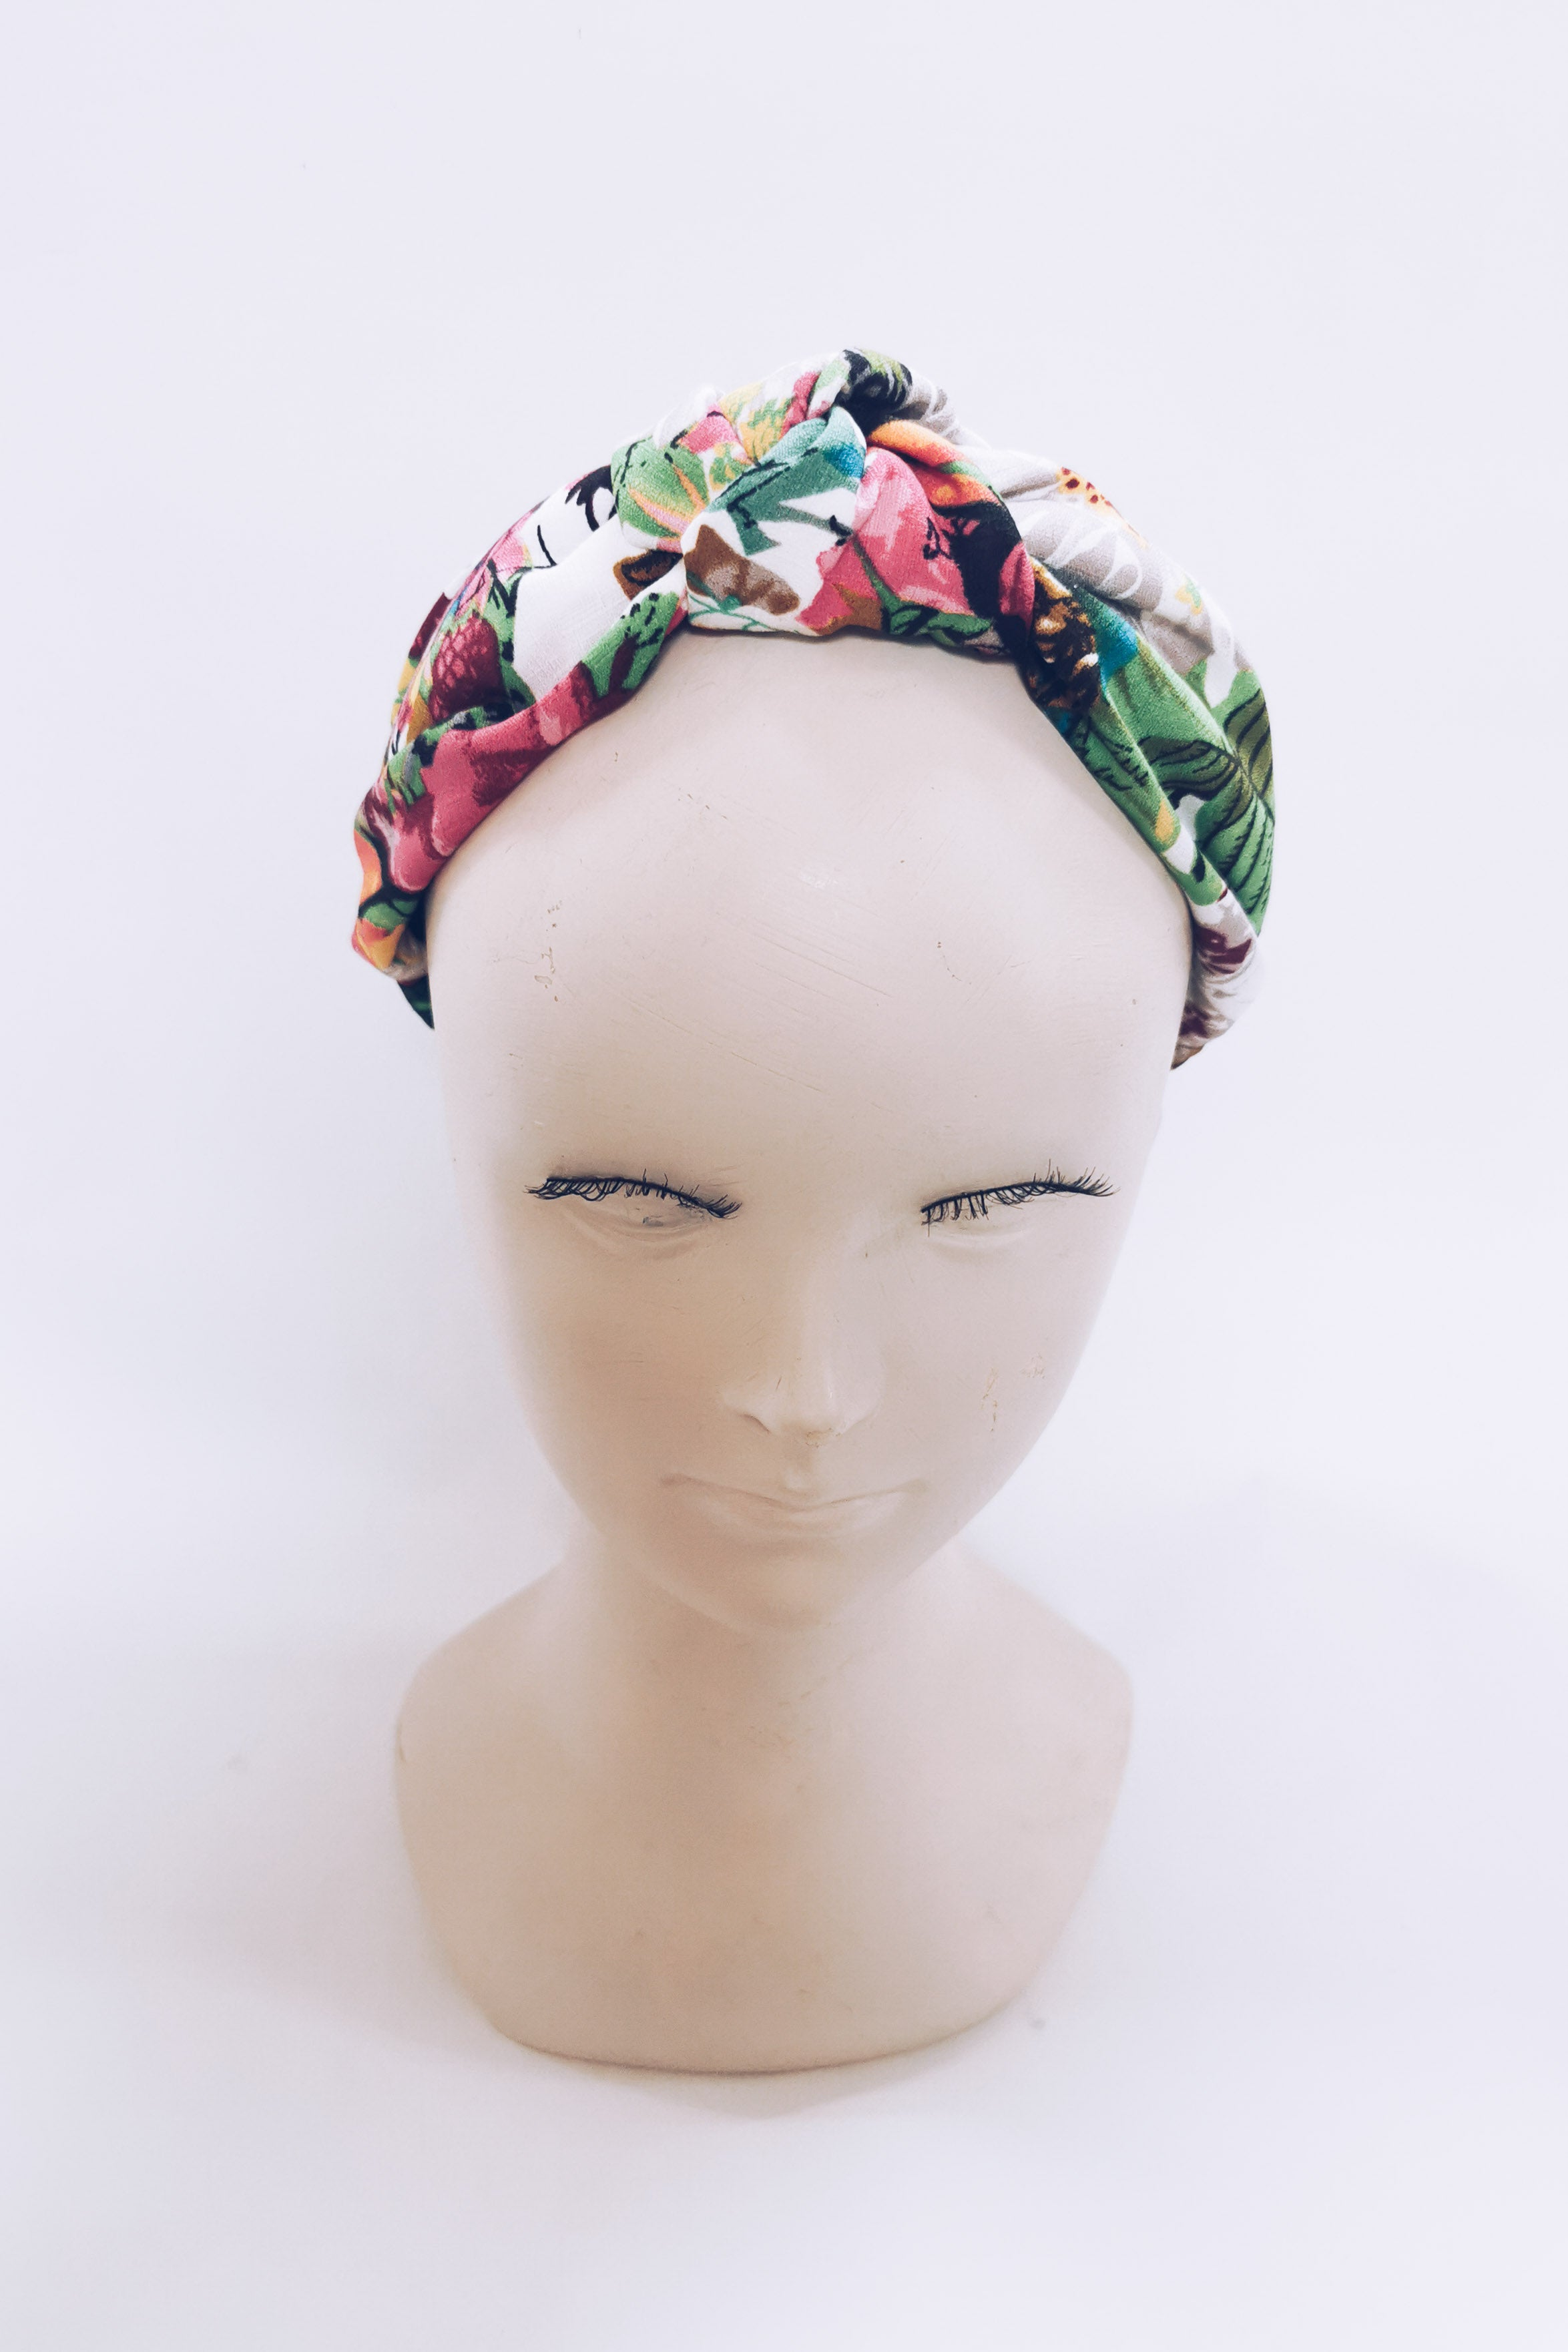 Floral knot top headband - Pink florals